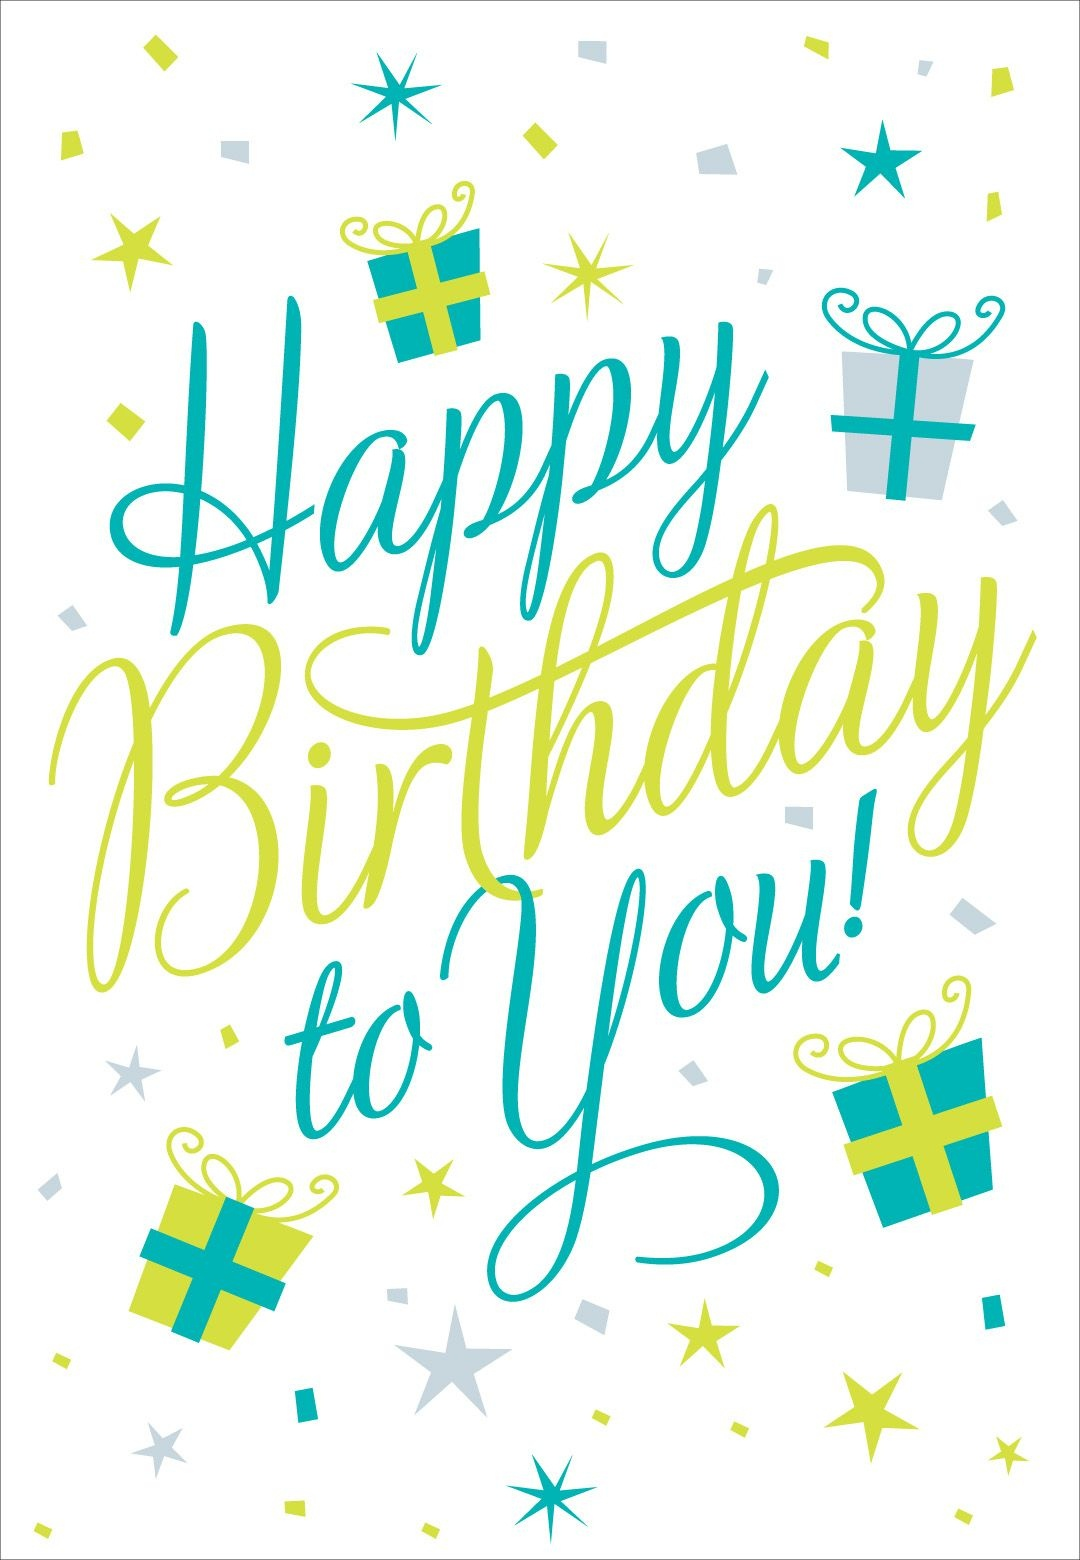 Free Printable Happy Birthday To You Greeting Card #birthday - Free Printable Happy Birthday Cards